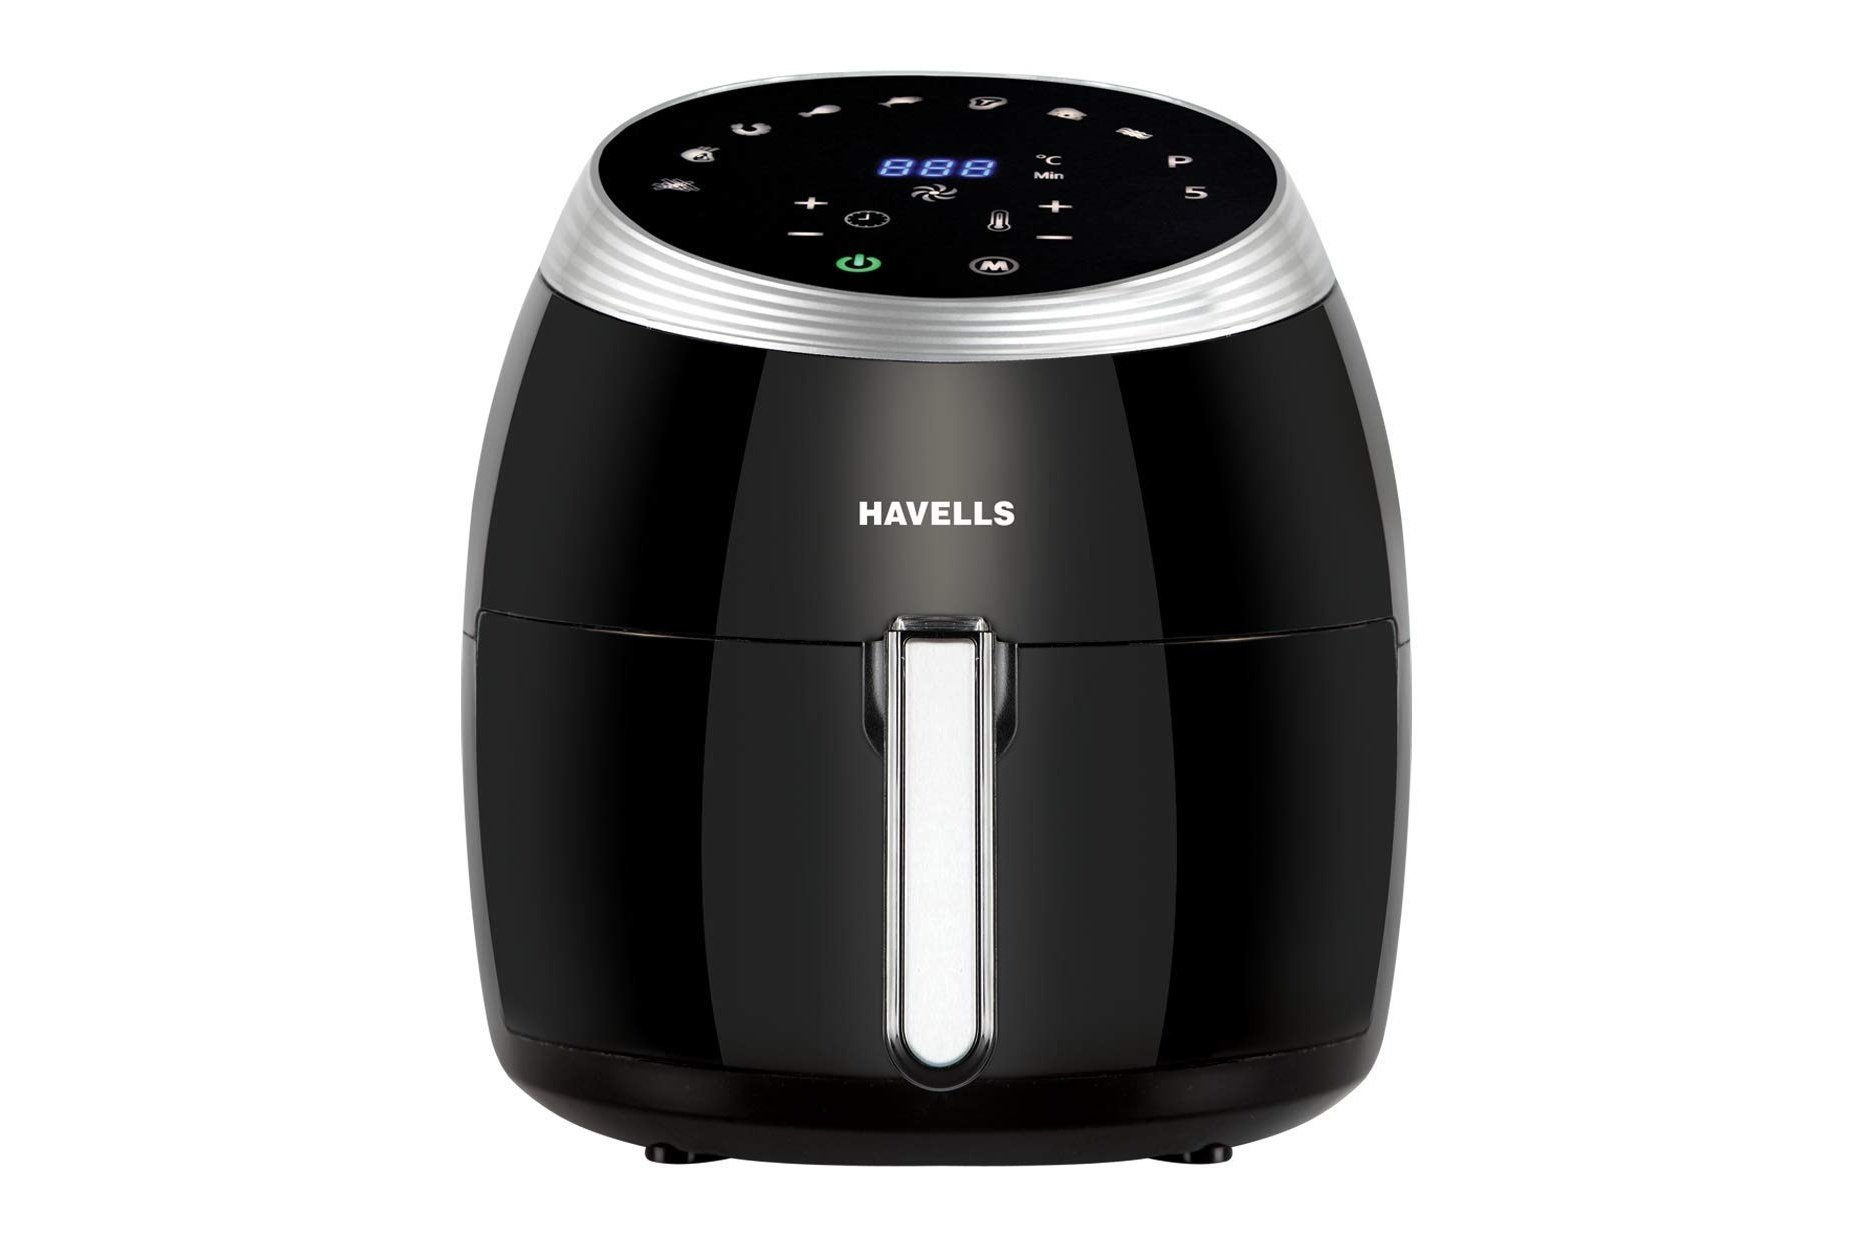 Havells Best Air Fryers in India